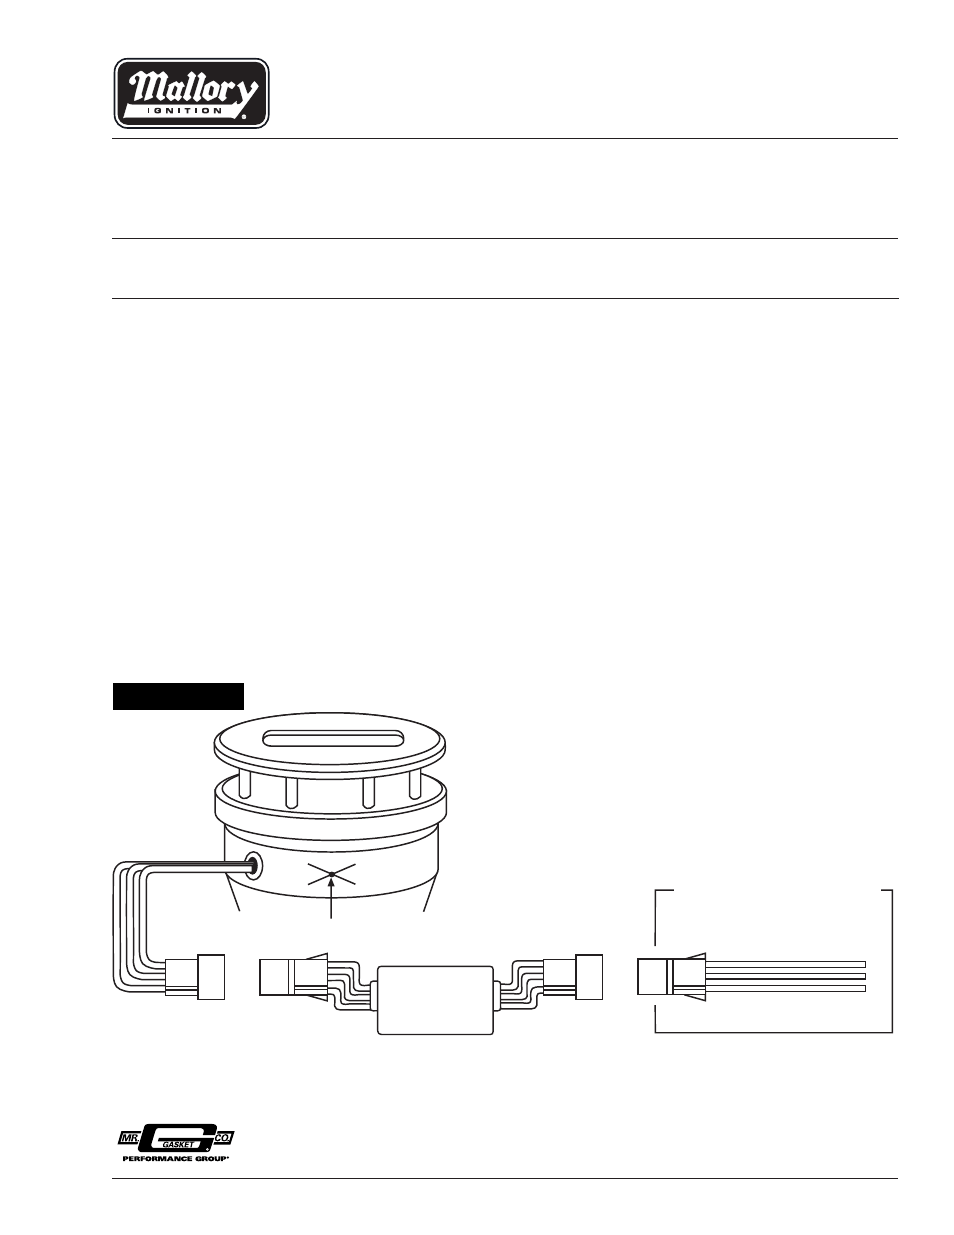 Mallory Ignition Wiring Diagram Pro 9000 Auto Electrical What Is The Stereo For 2006 Chevy Trailblazer Autos 1979 Dodge 440 Hyfire 6a